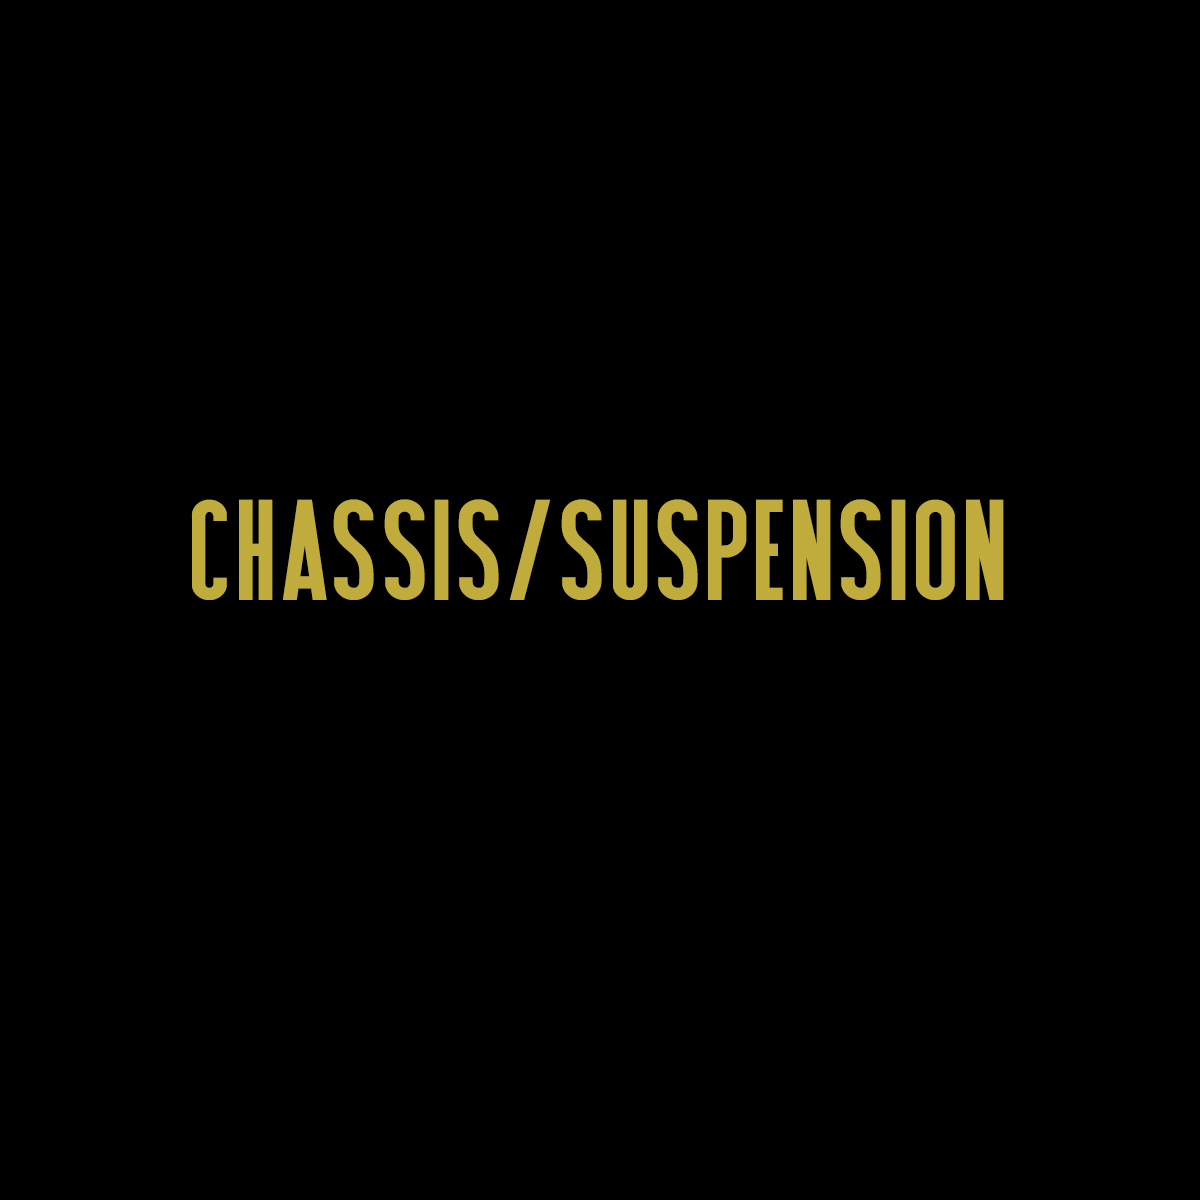 Chassis-Suspension.jpg